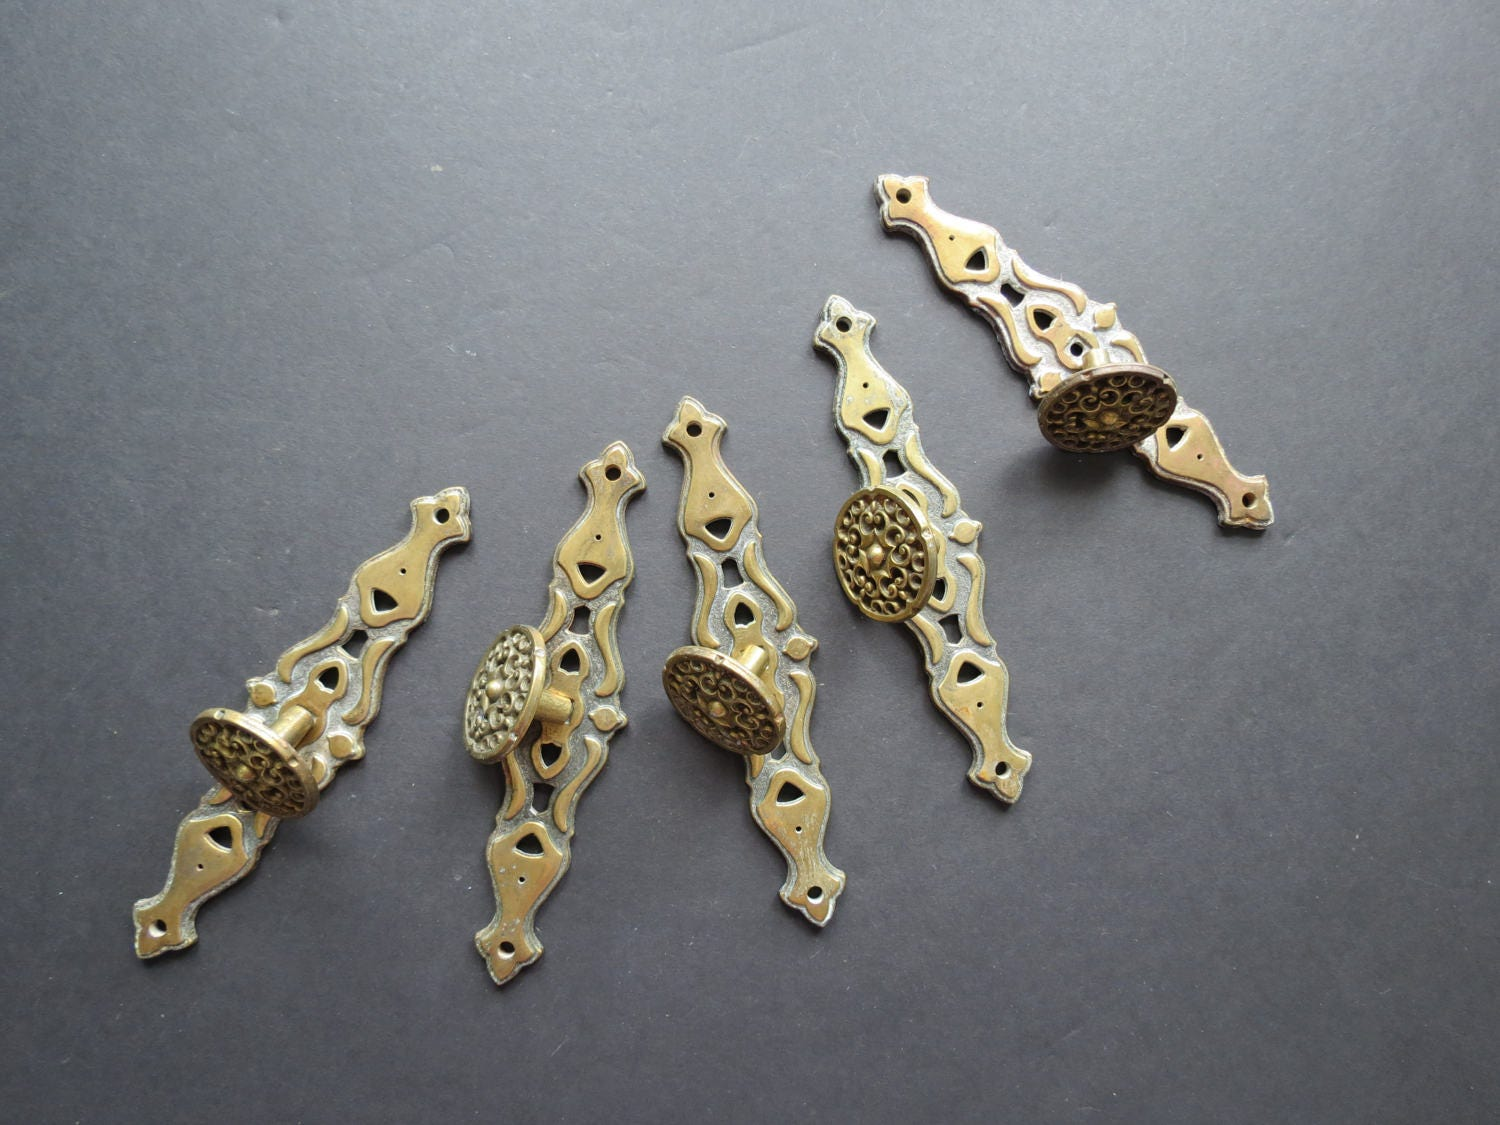 Decorative Kitchen Hardware 5 Vintage Drawer Pulls With Backplates Decorative Ornate Brass